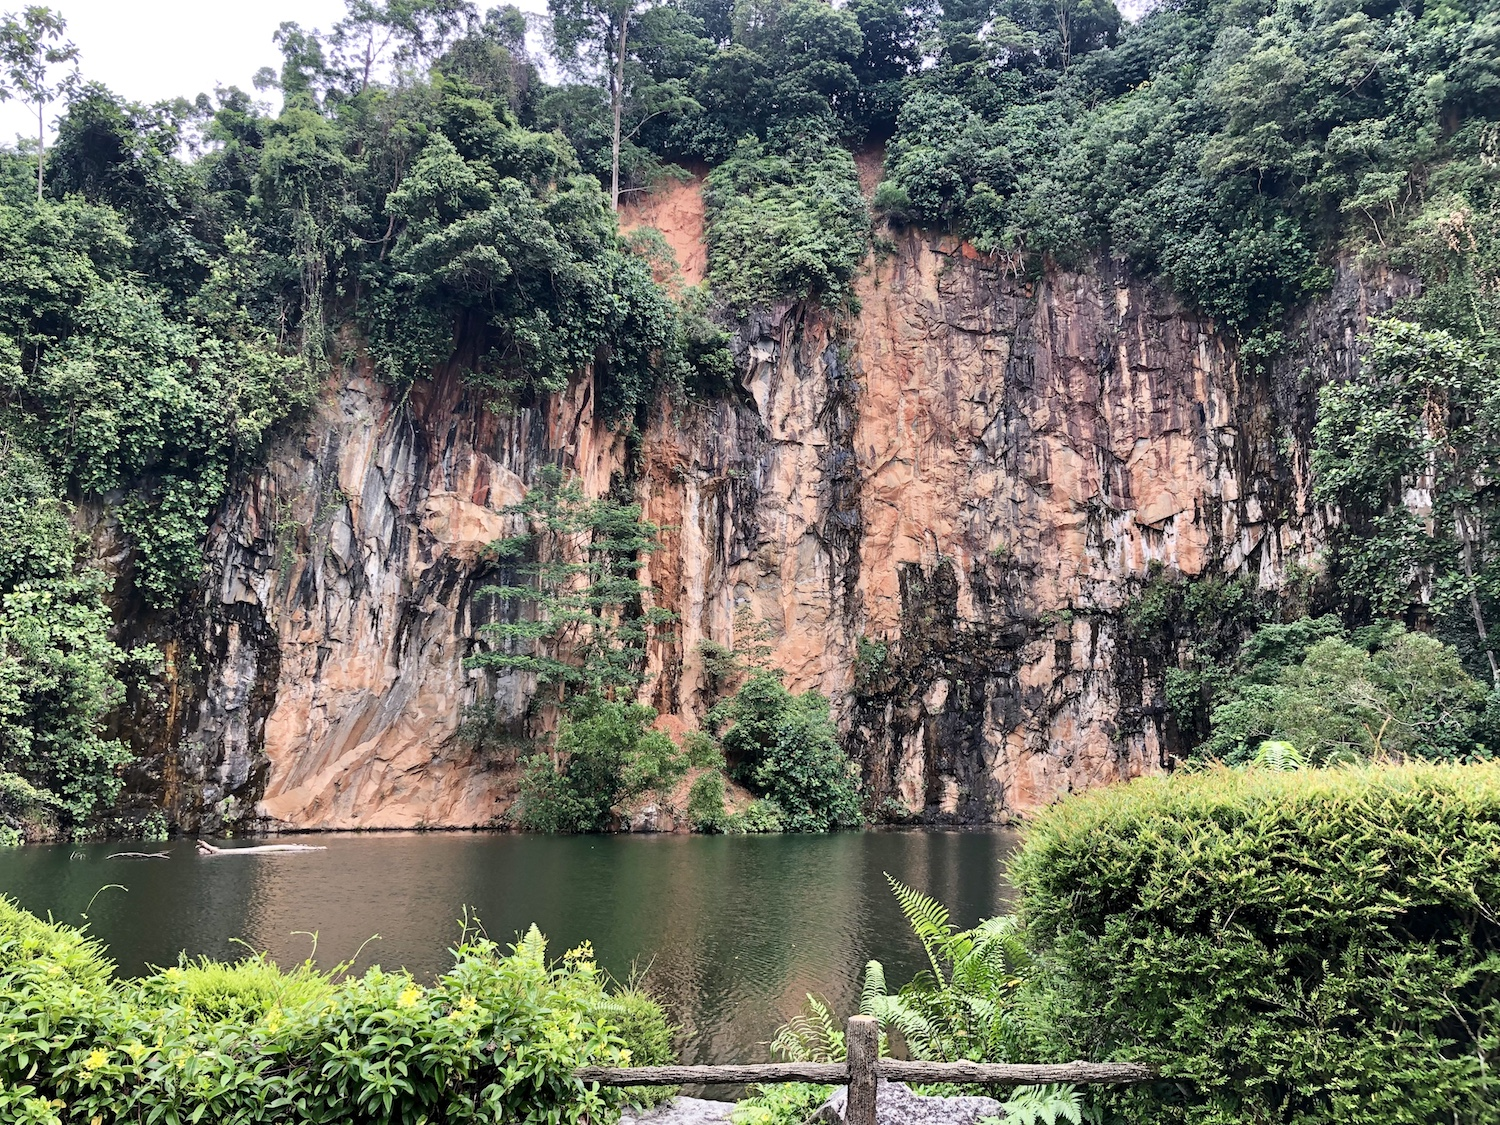 Bukit Batok is an underrated residential gem where Le Quest is located